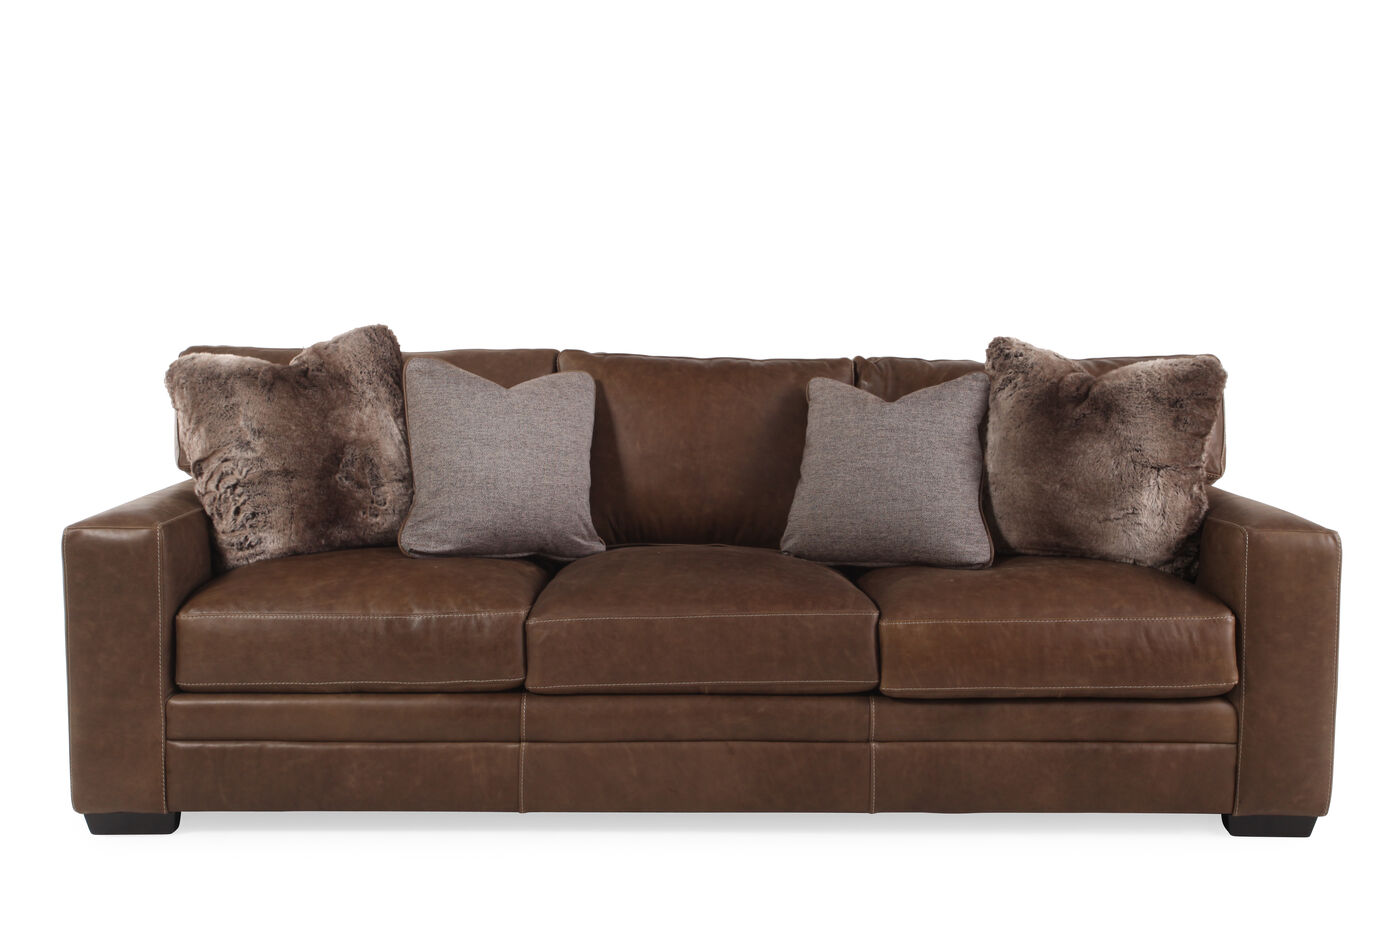 Bernhardt tolbert leather sofa mathis brothers furniture for Bernhardt furniture